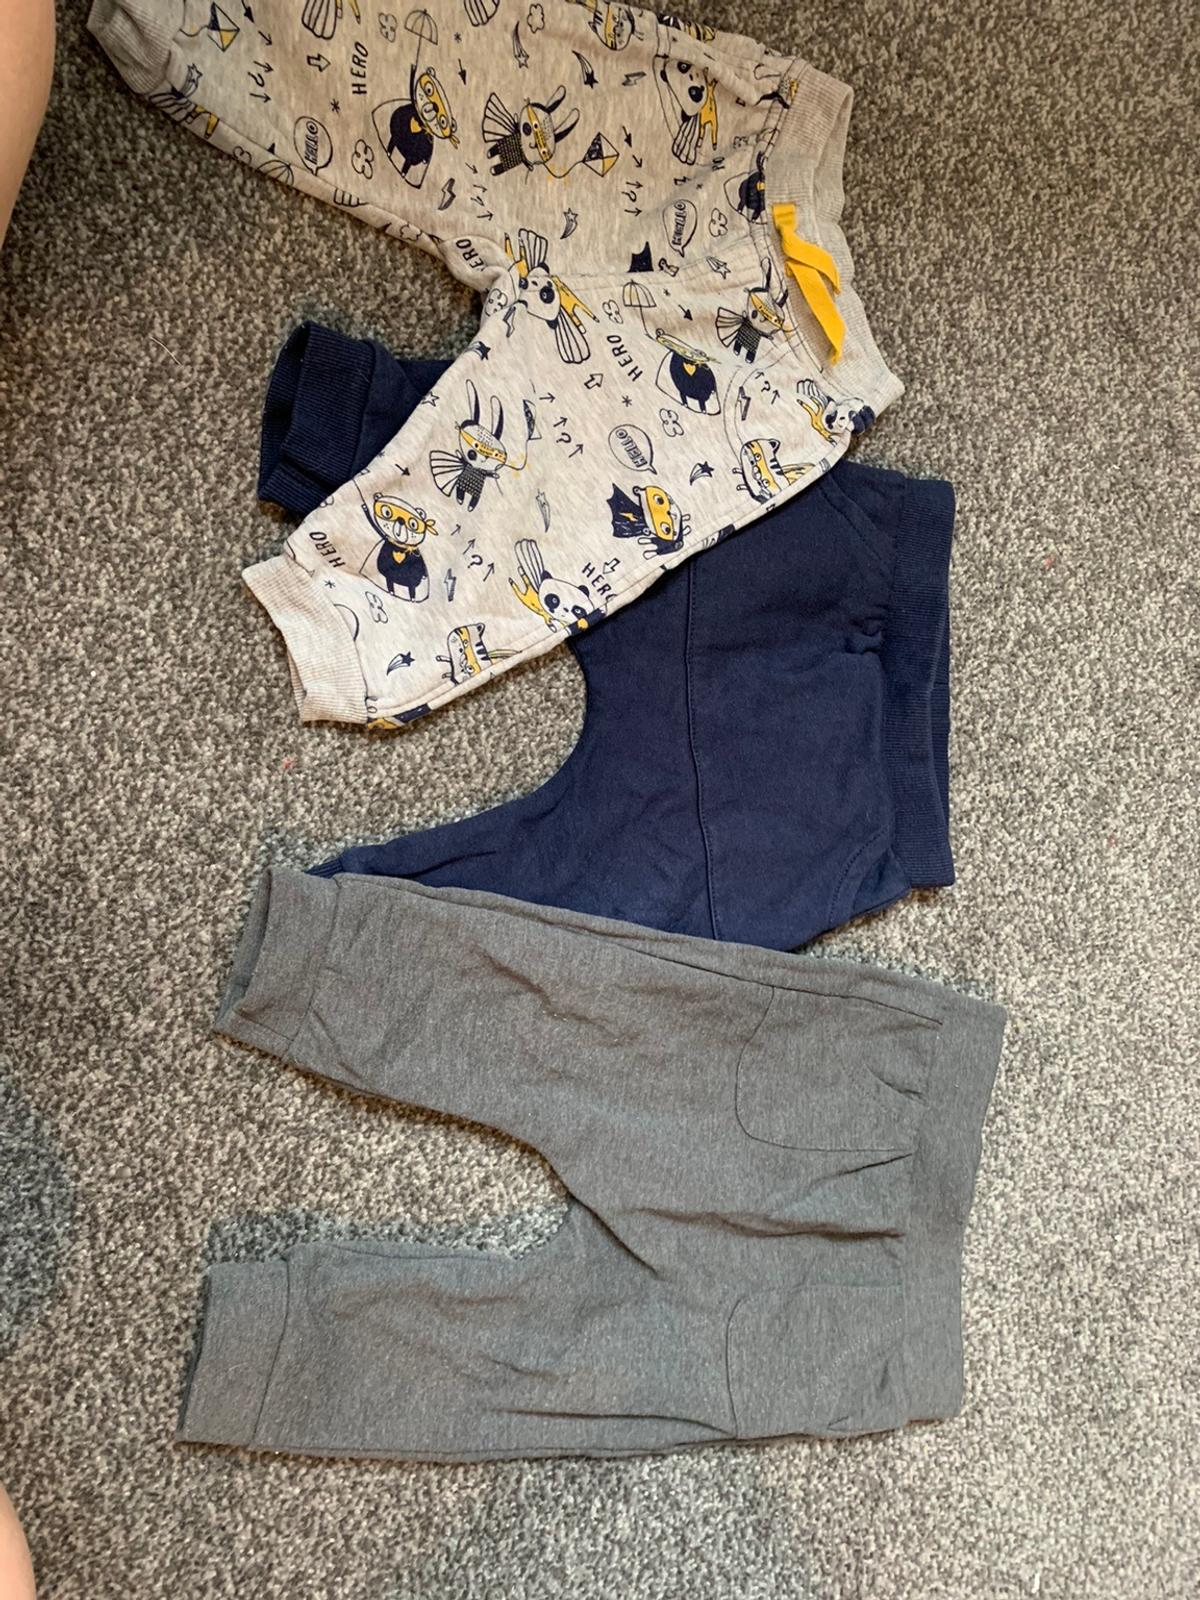 Both 6-9 months, 3 pairs of jeans and 3 pairs of bottoms Very good condition